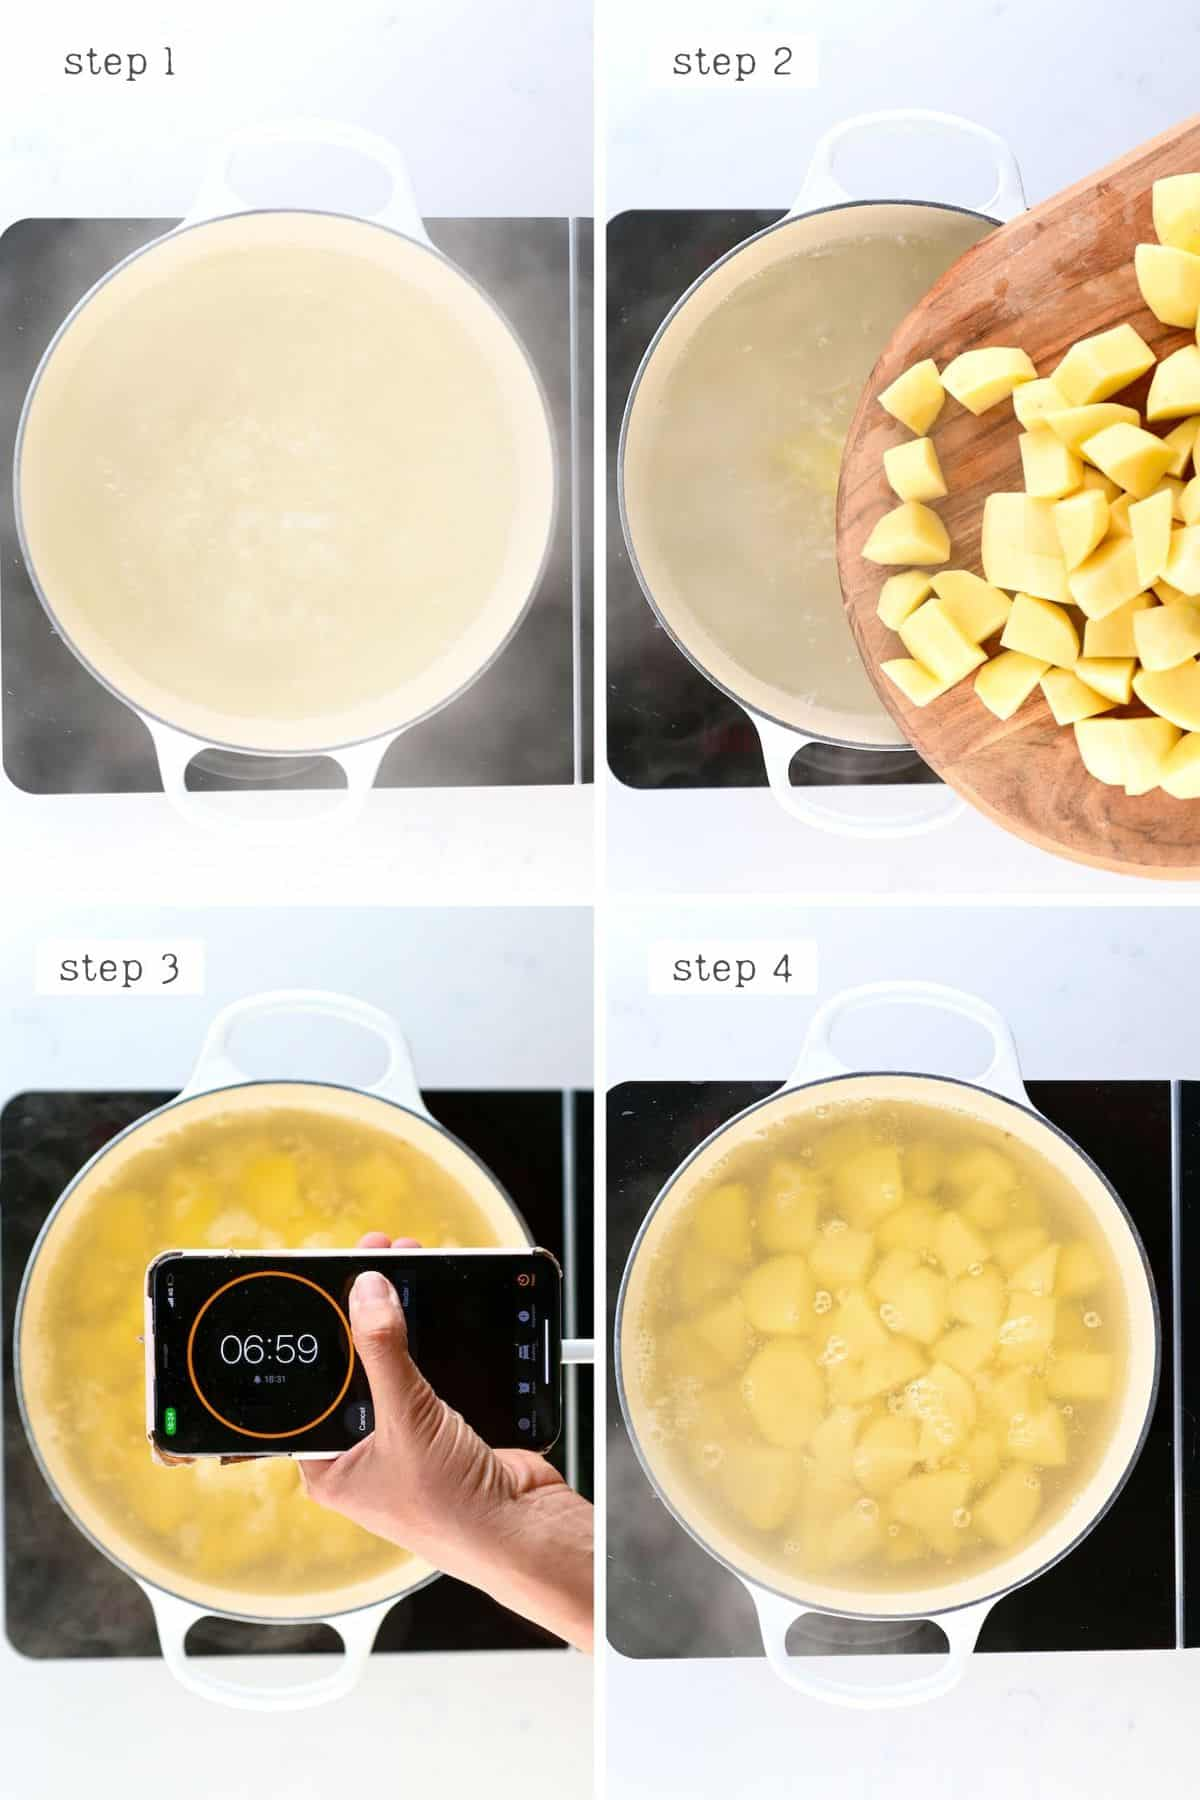 Steps for boiling potatoes